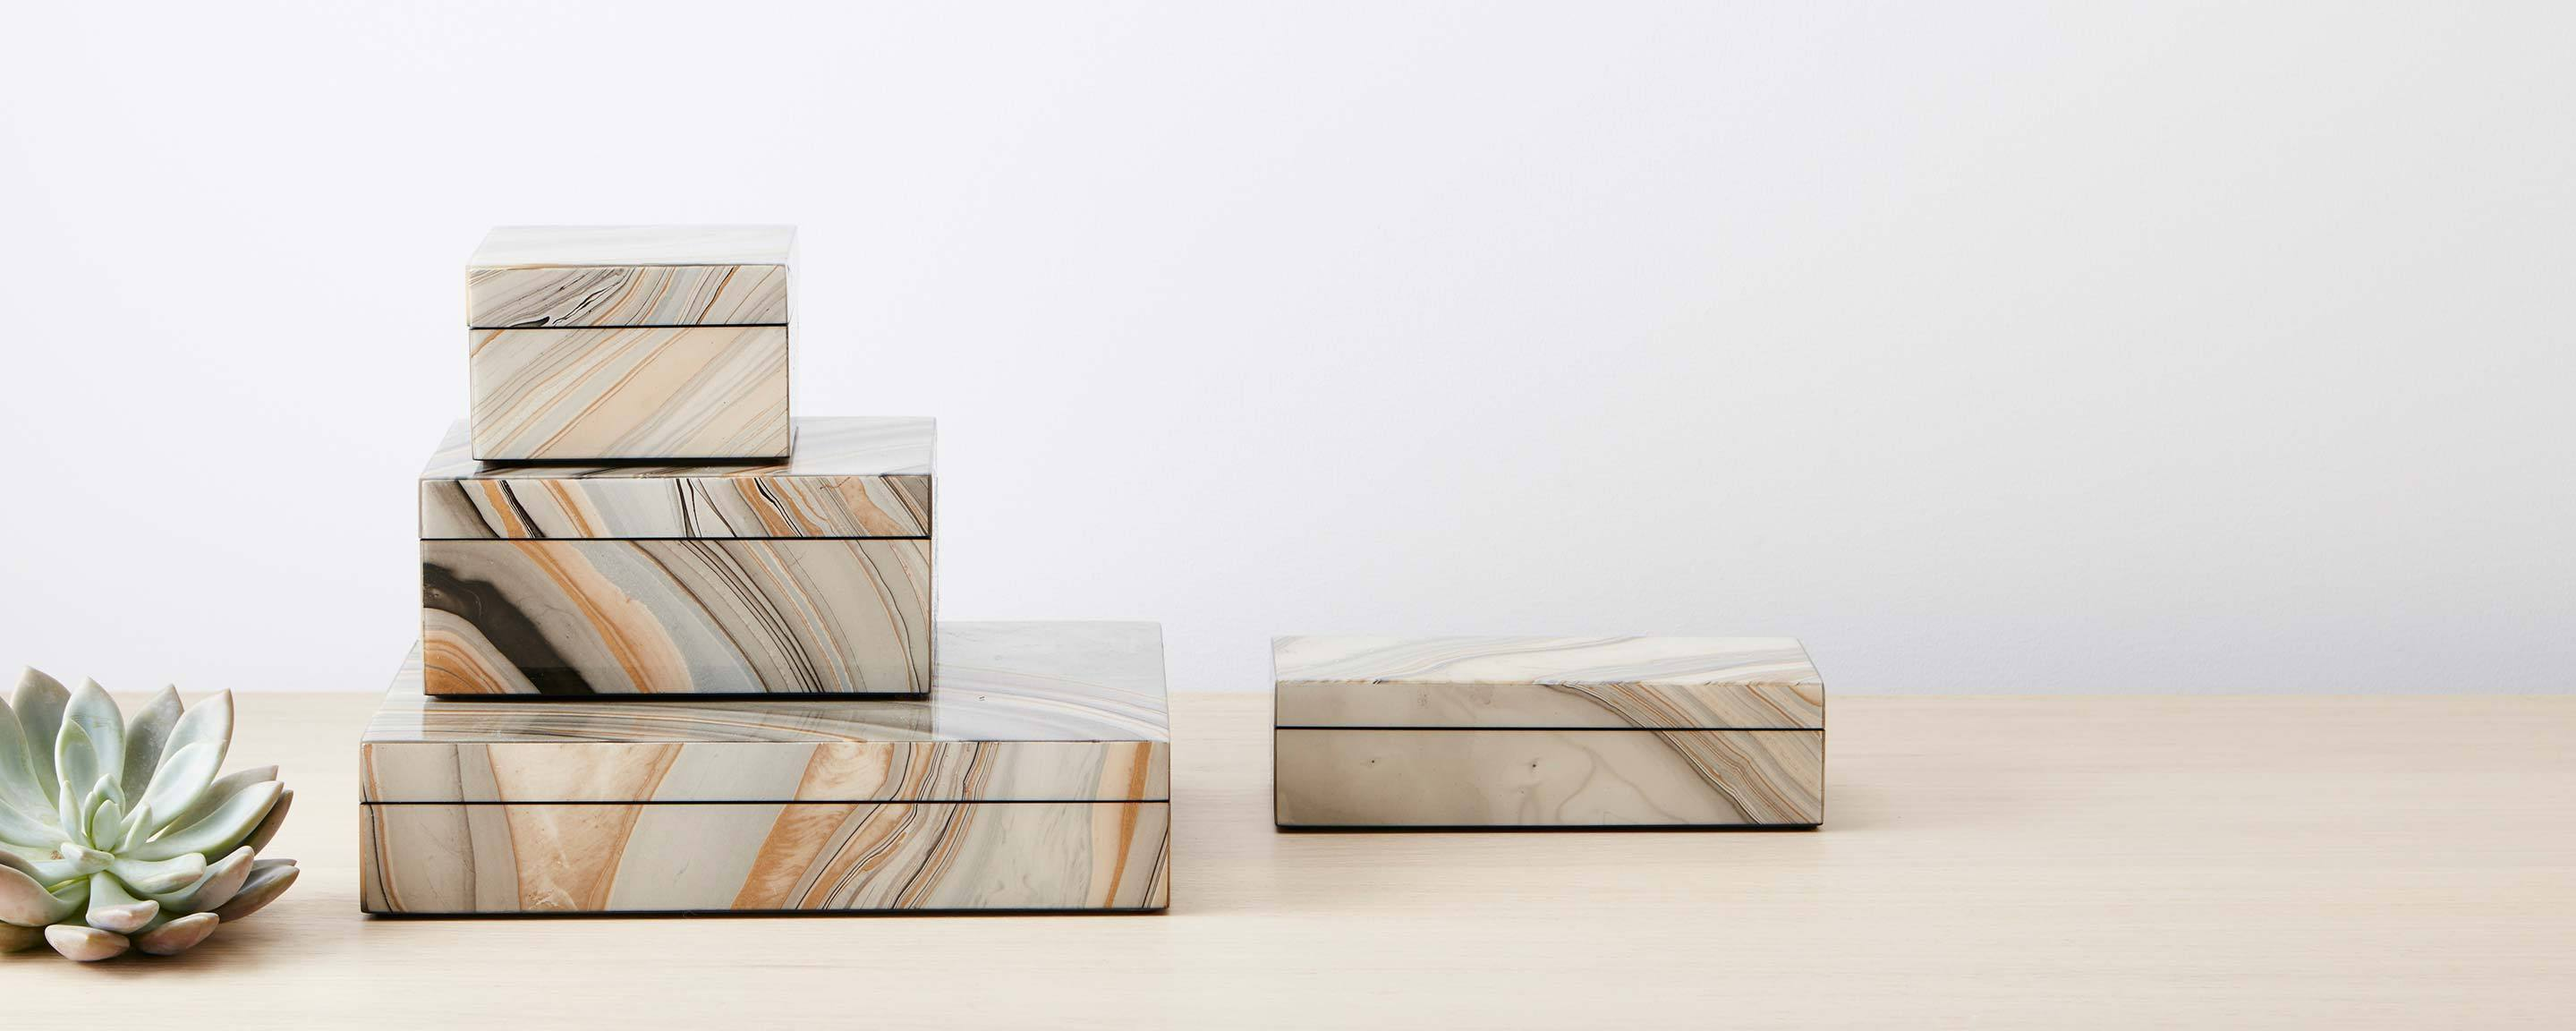 marbleized lacquer boxes